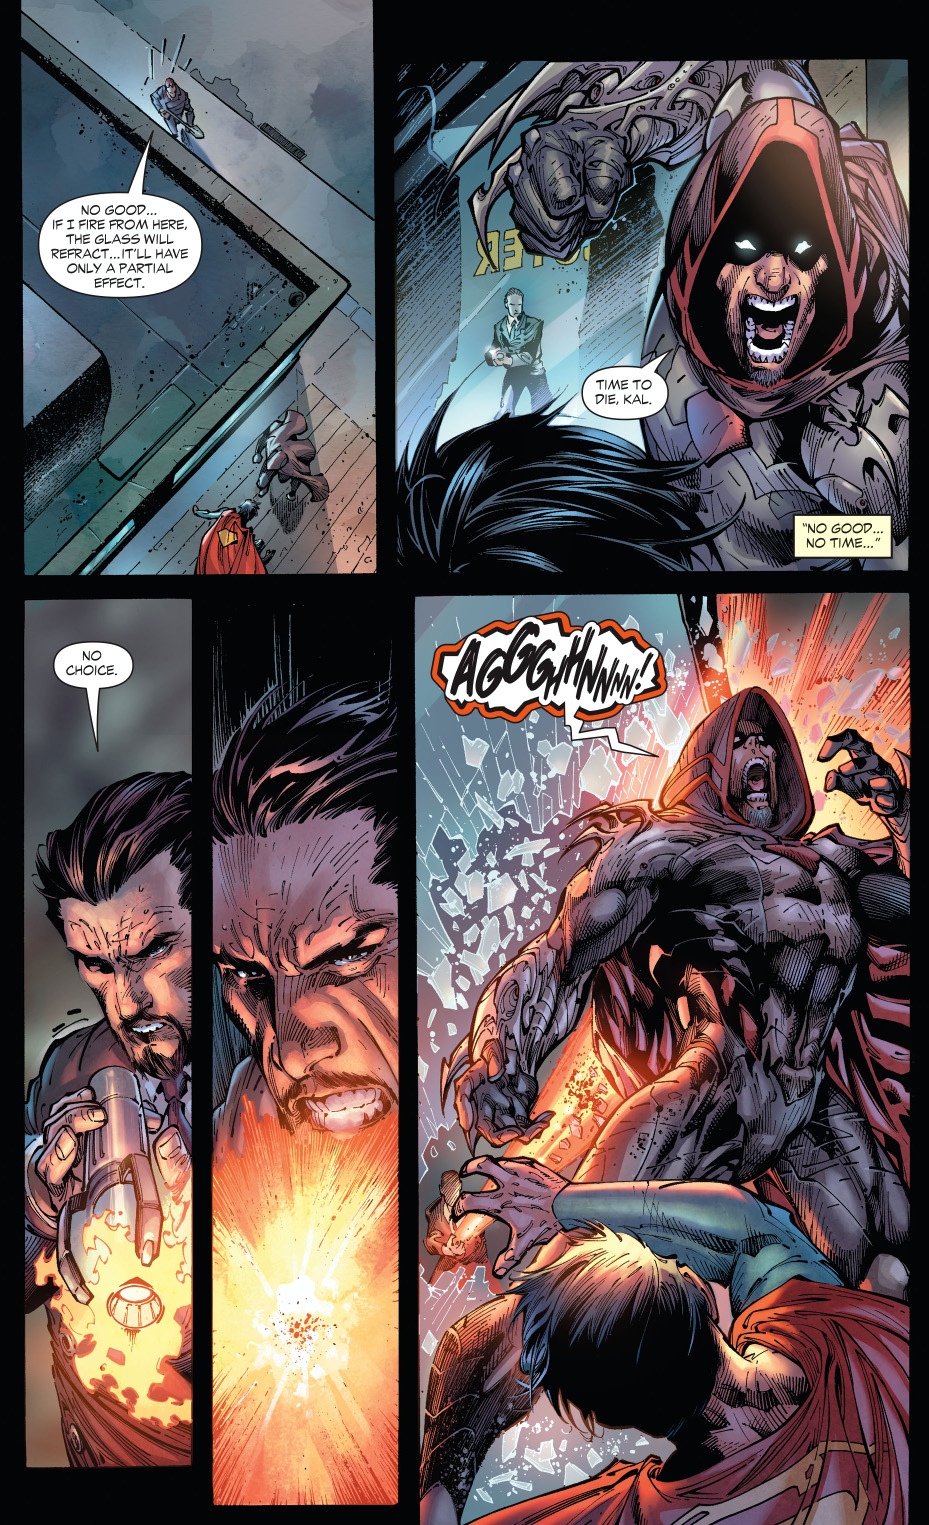 lex luthor depowers zod (earth 1)